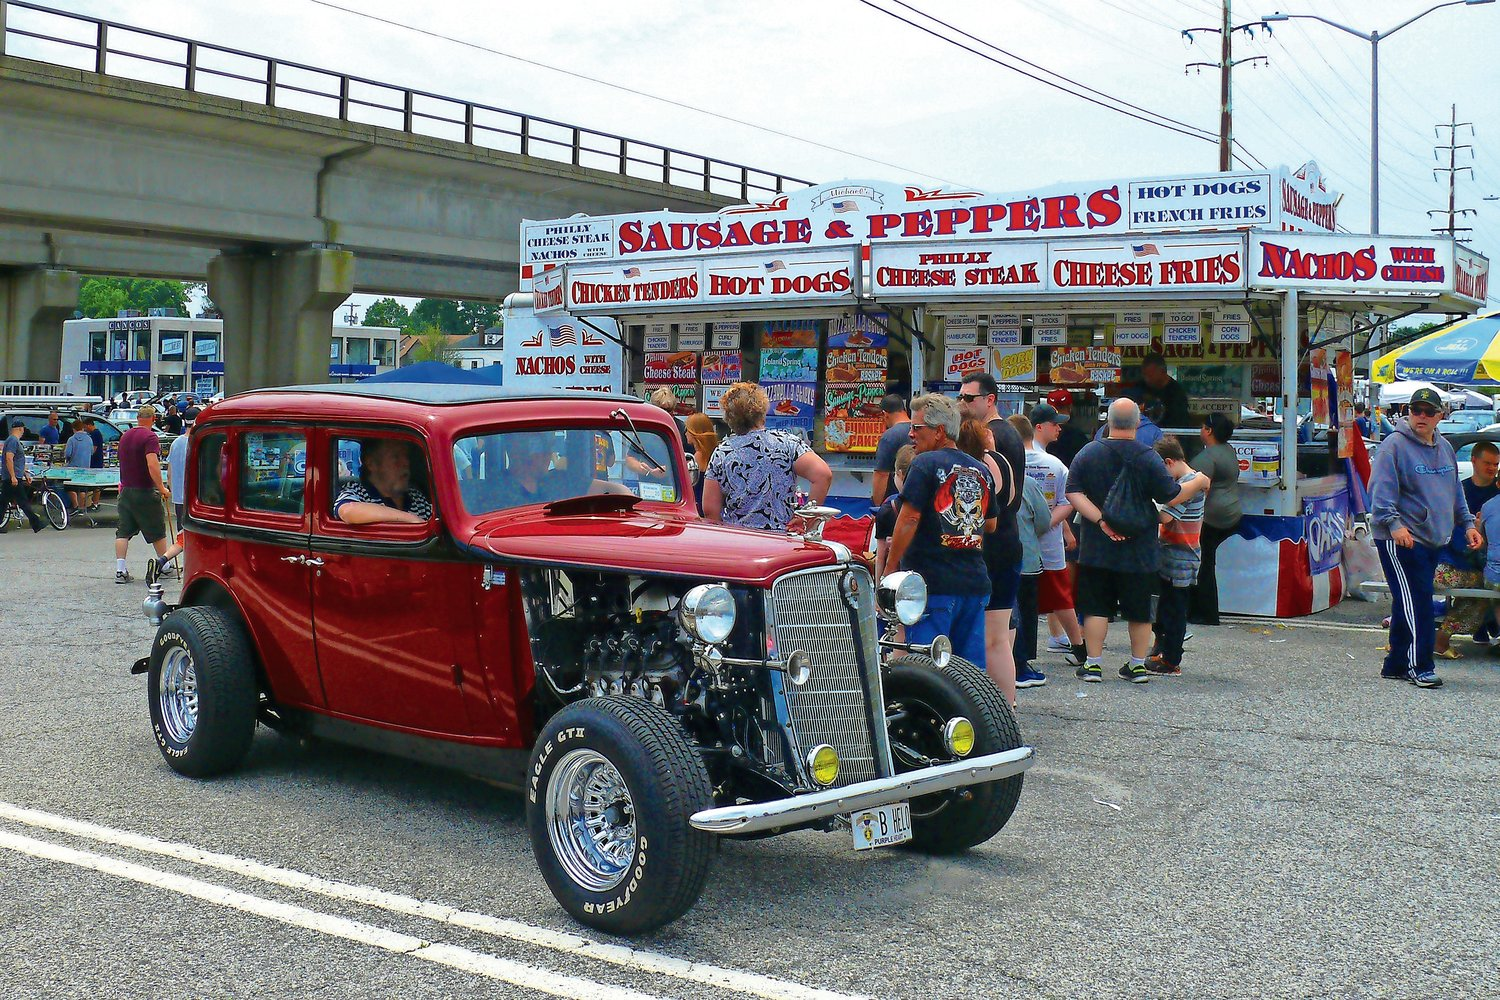 A classic Hot Rod slowly rolled through the event in search of a spot to show off its eye-catching restoration.